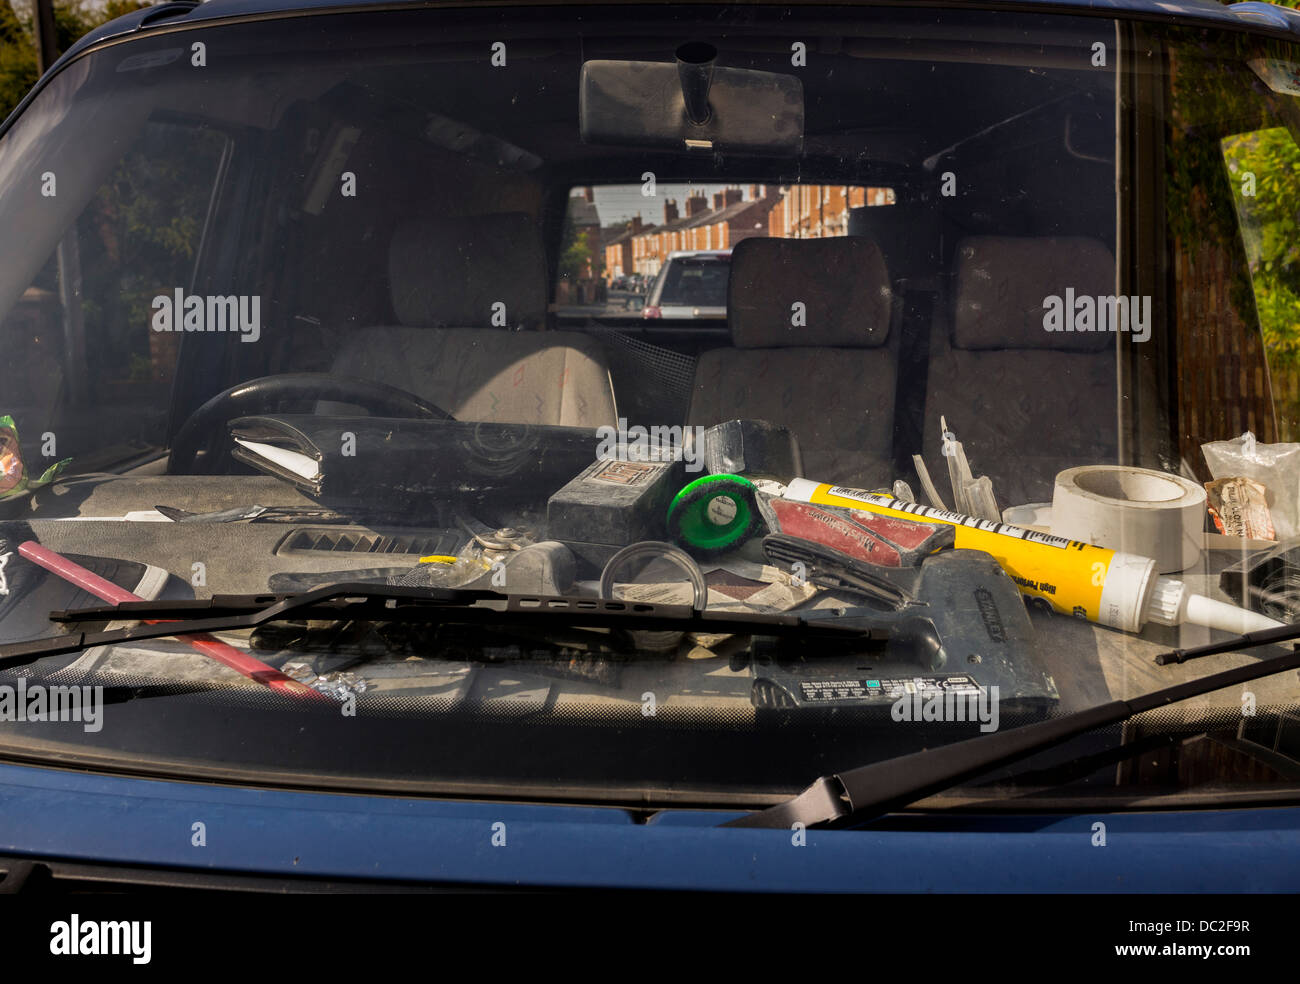 DIRTY ,DUSTY, DISORGANISED, DASH BOARD OF BUILDERS VAN WITH JUMBLE OF TOOLS ,TAPE MASTIC, NOTE BOOK, PENCIL,MESSY. - Stock Image